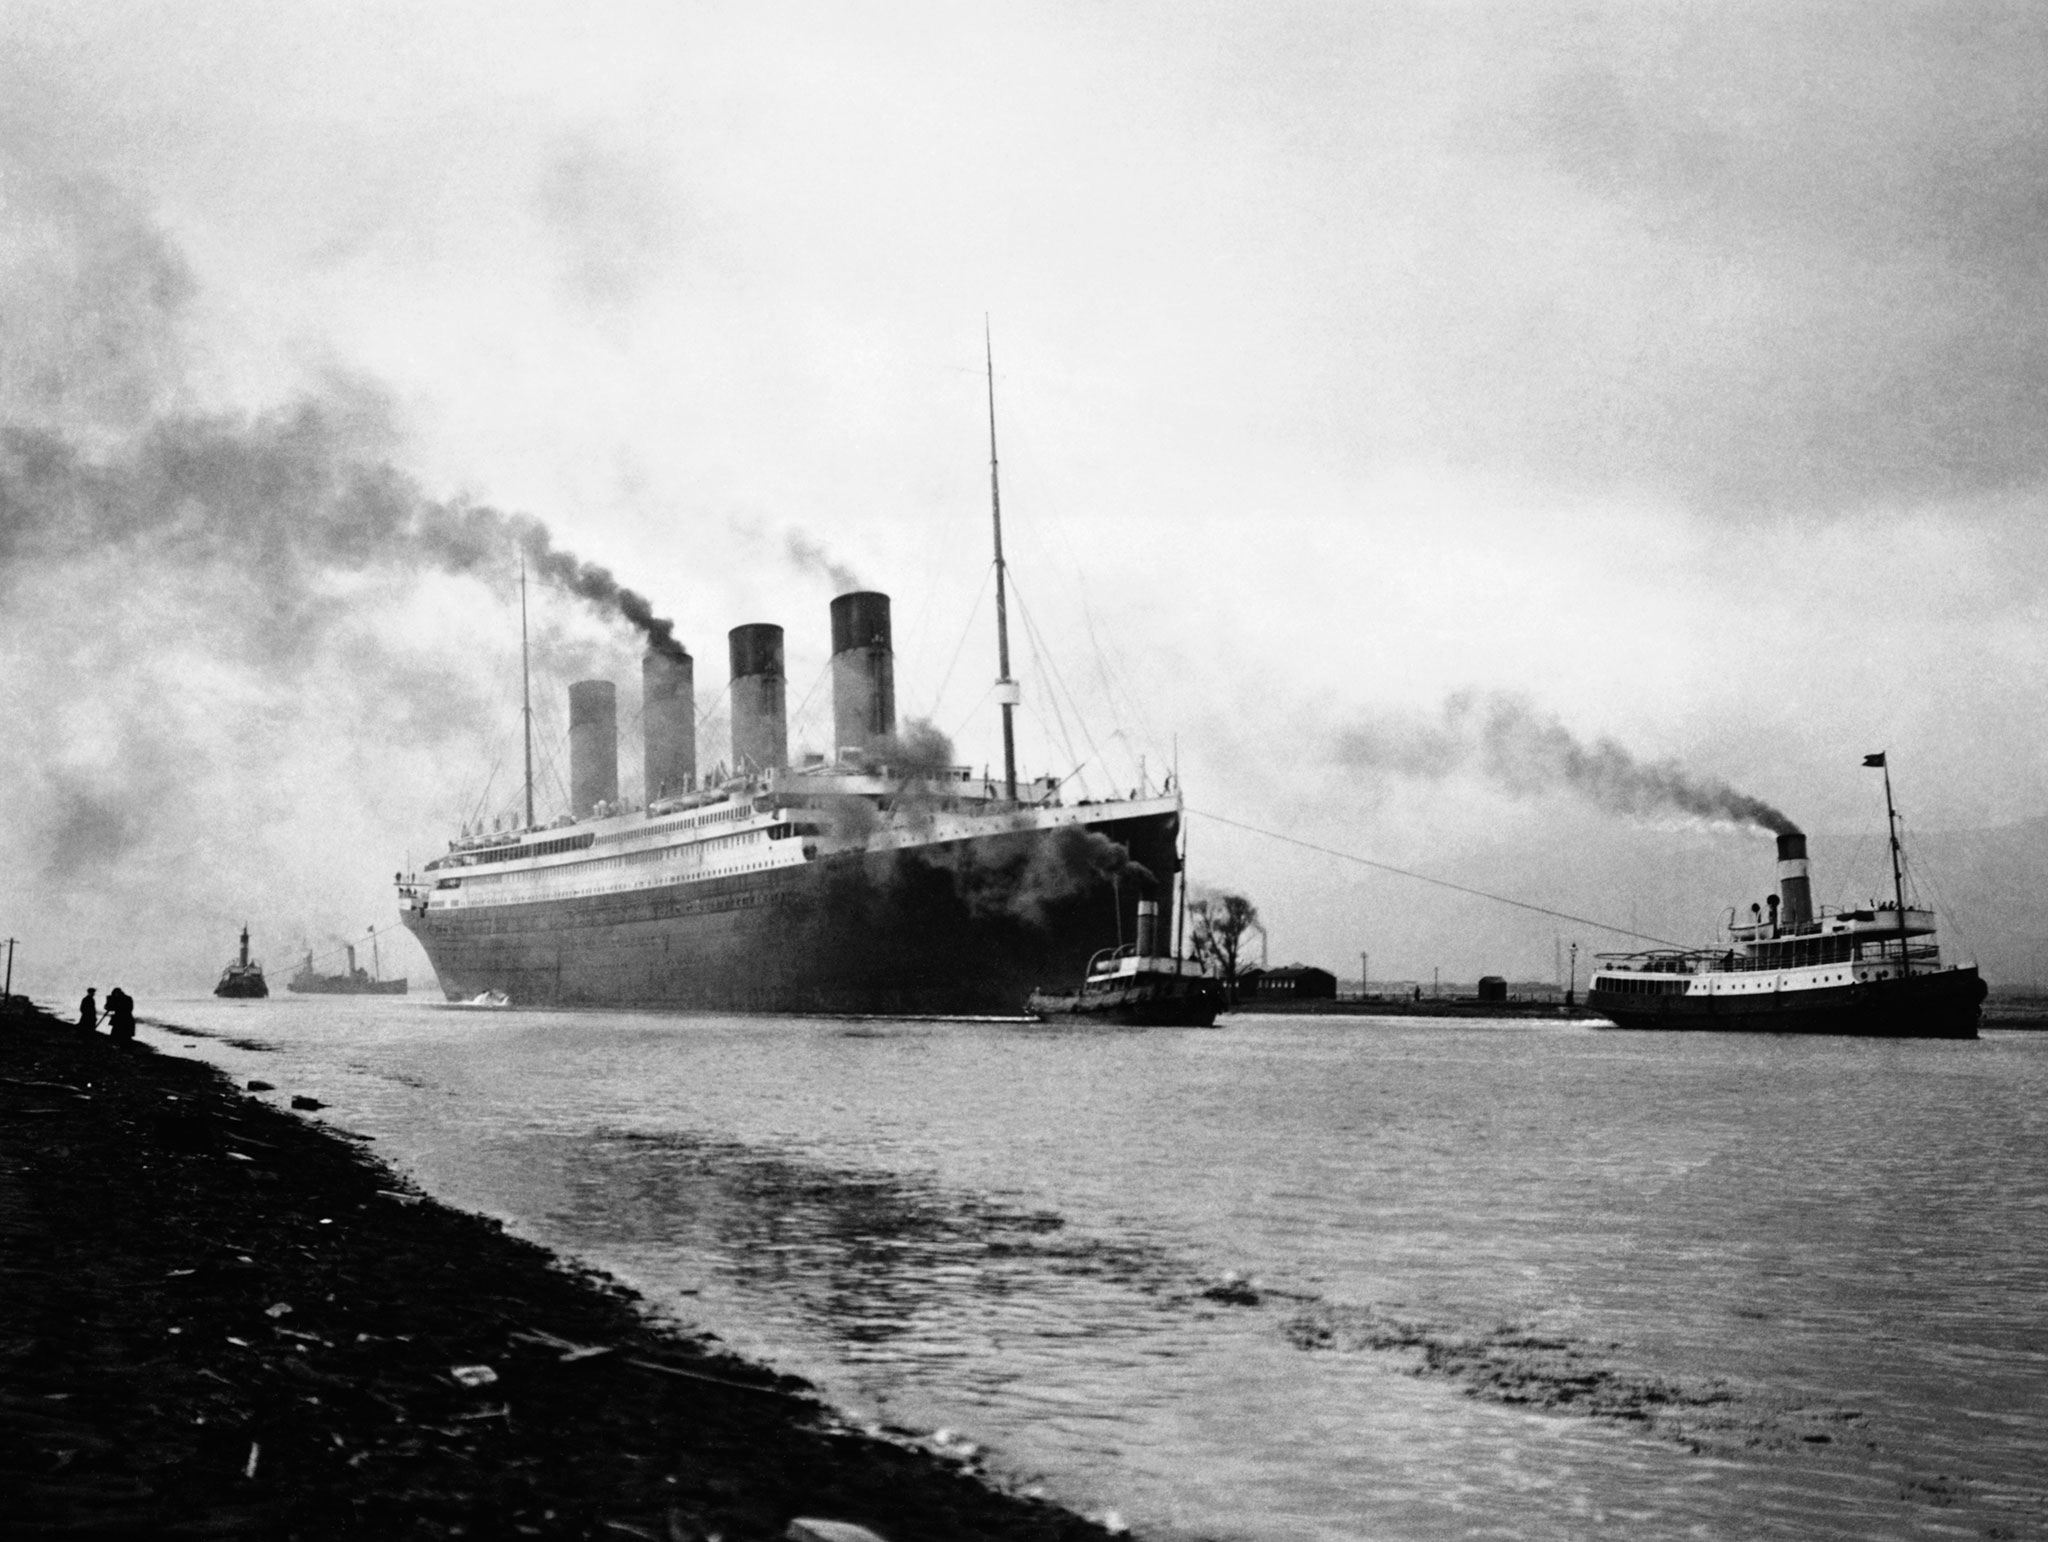 Titanic leaves Belfast for sea trials on April 2, 1912. © Hulton-Deutsch Collection/CORBIS